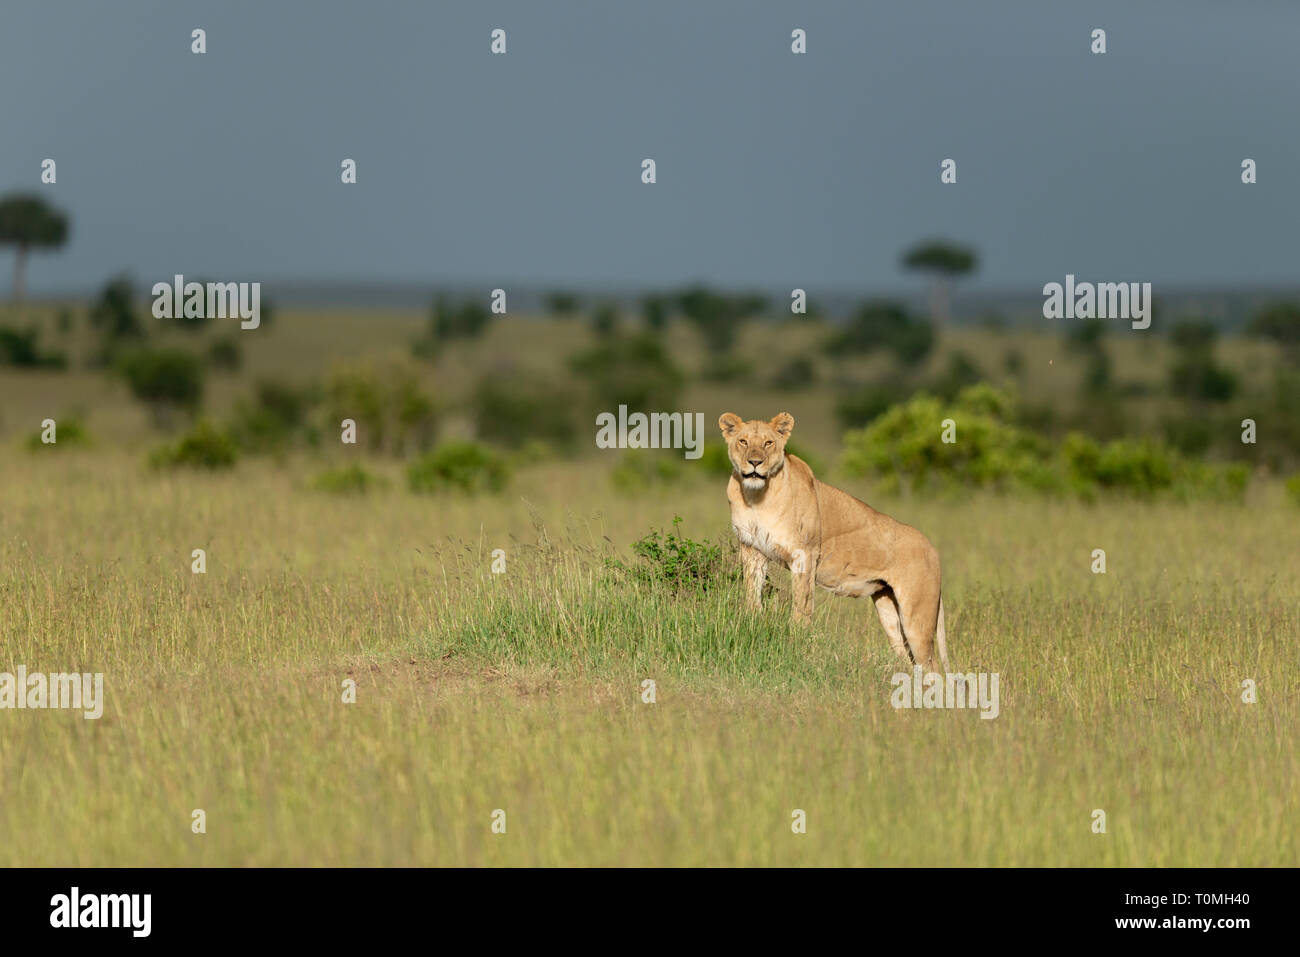 97e62158dbf Lioness in a golden Light at Masai Mara Game Reserve,Kenya,Africa ...